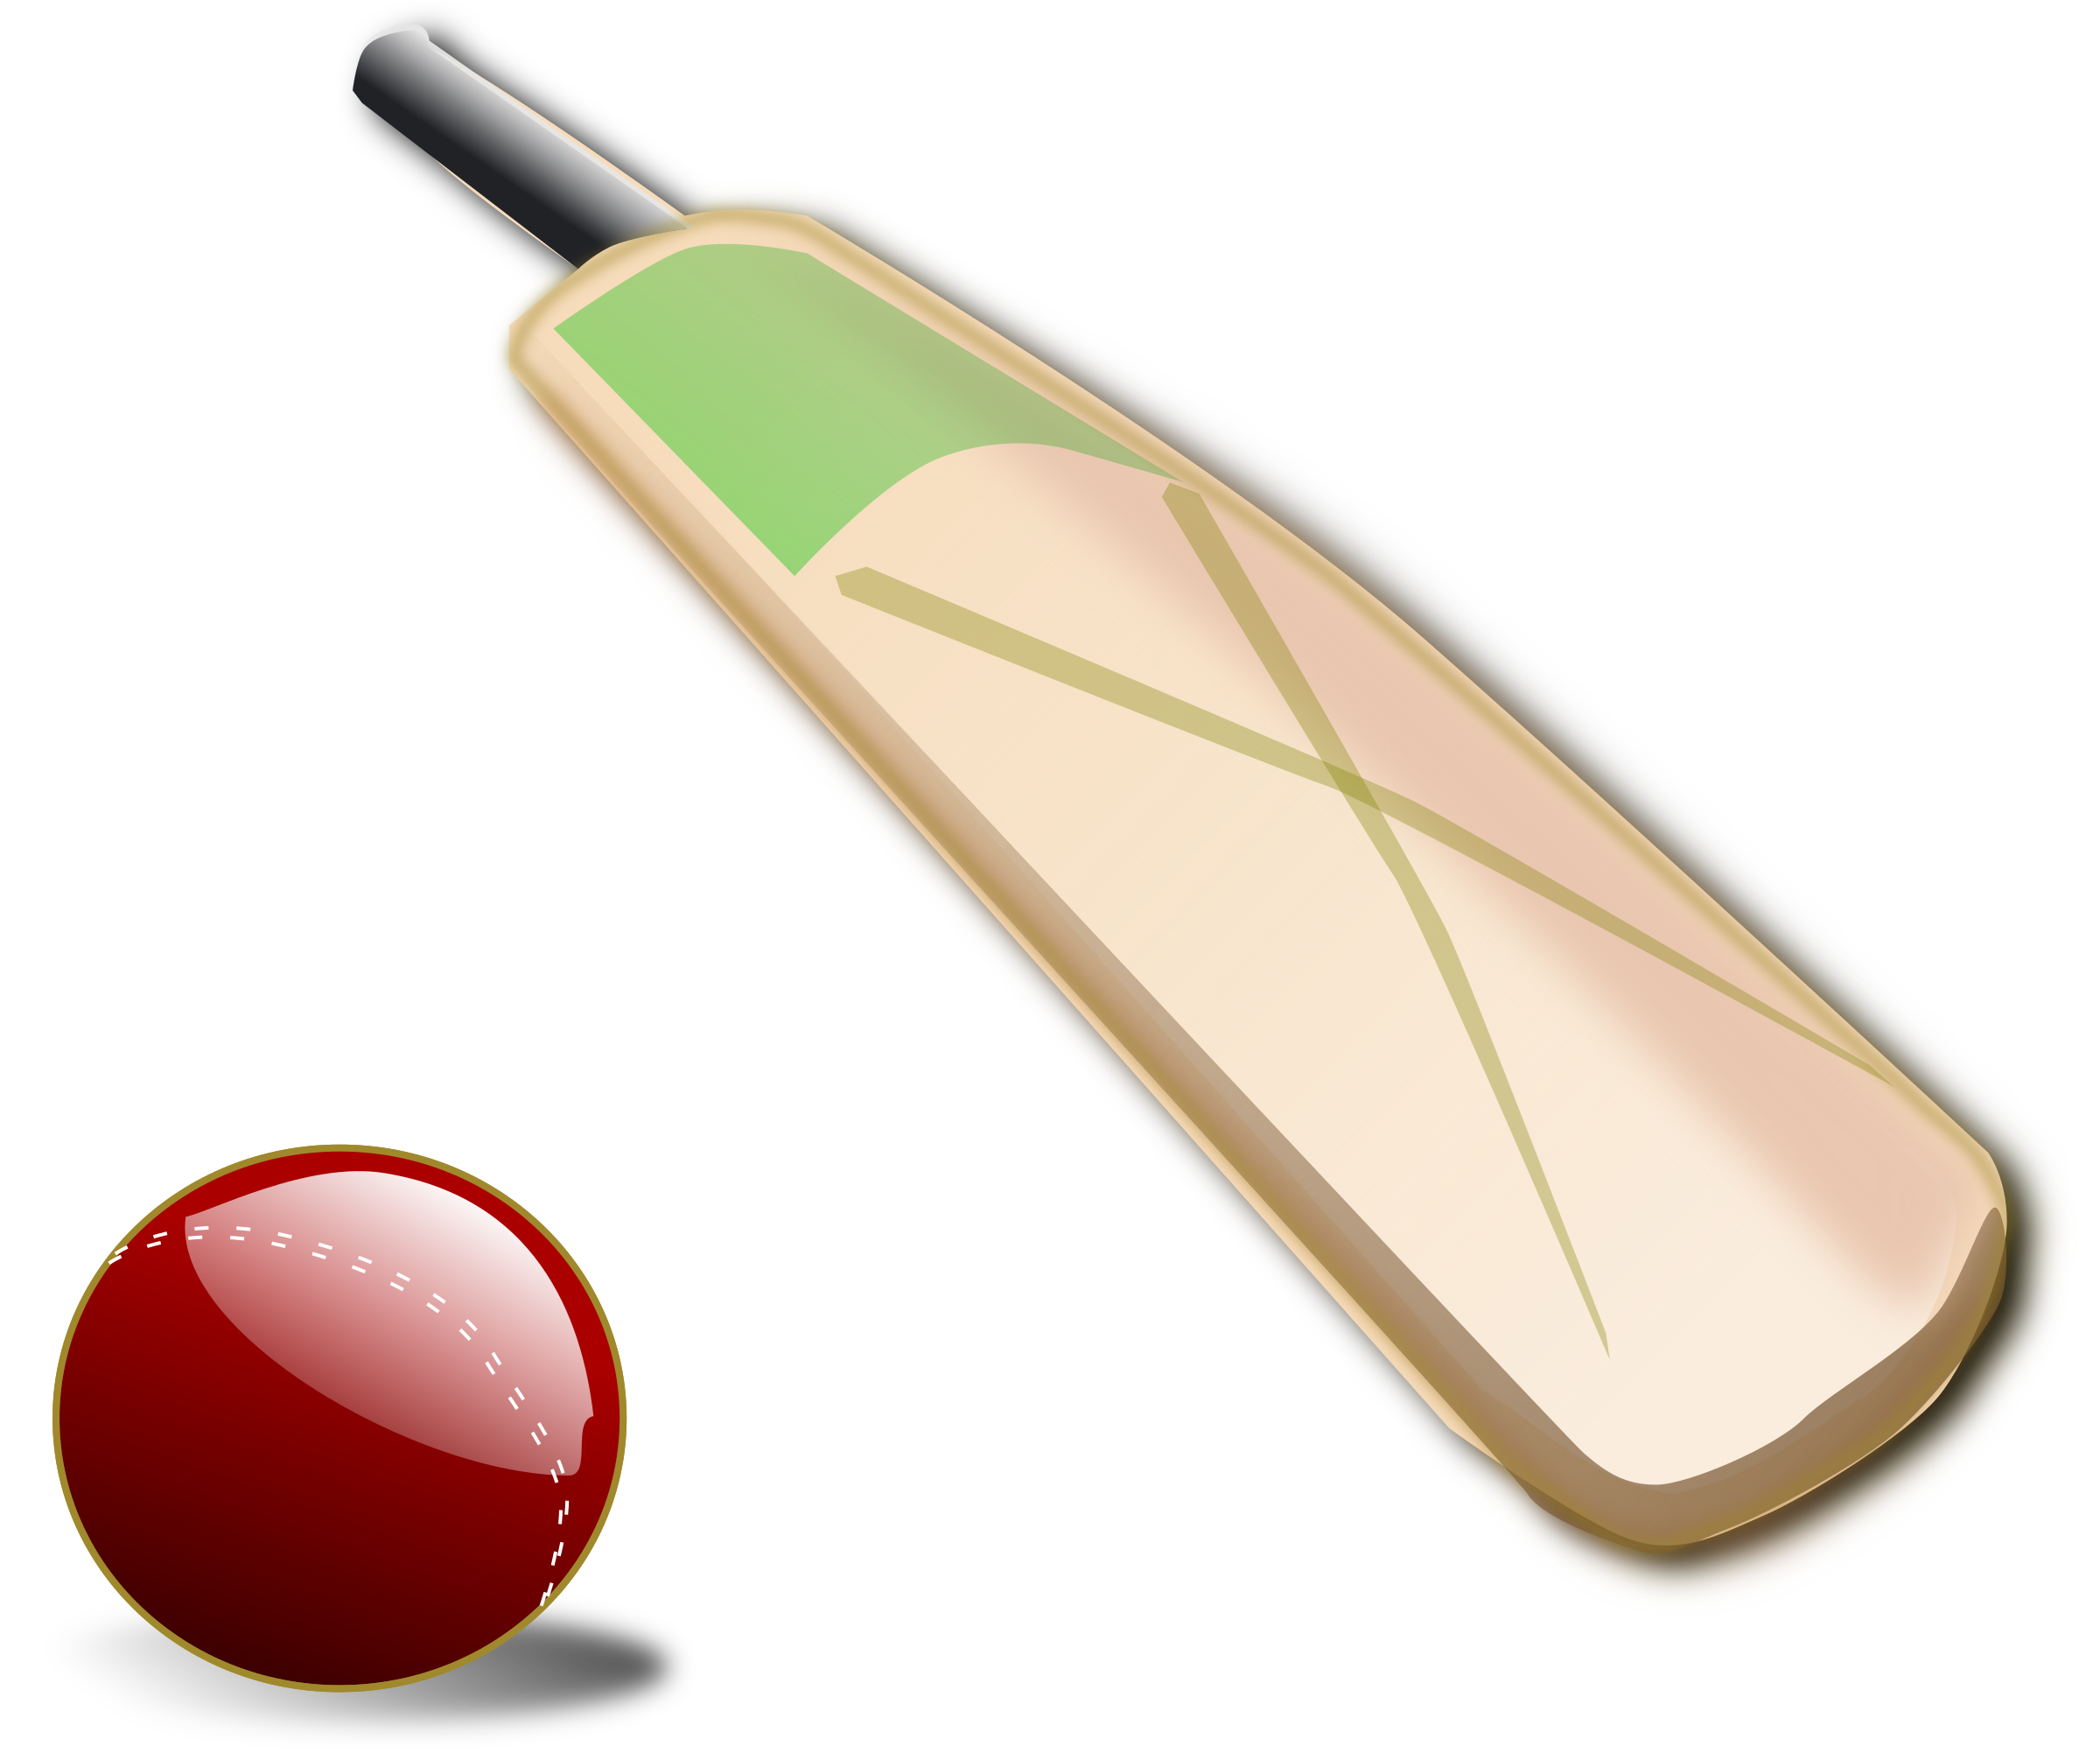 This free Icons Png design of Cricket ball and bat PlusPng.com  - Ball And Bat PNG